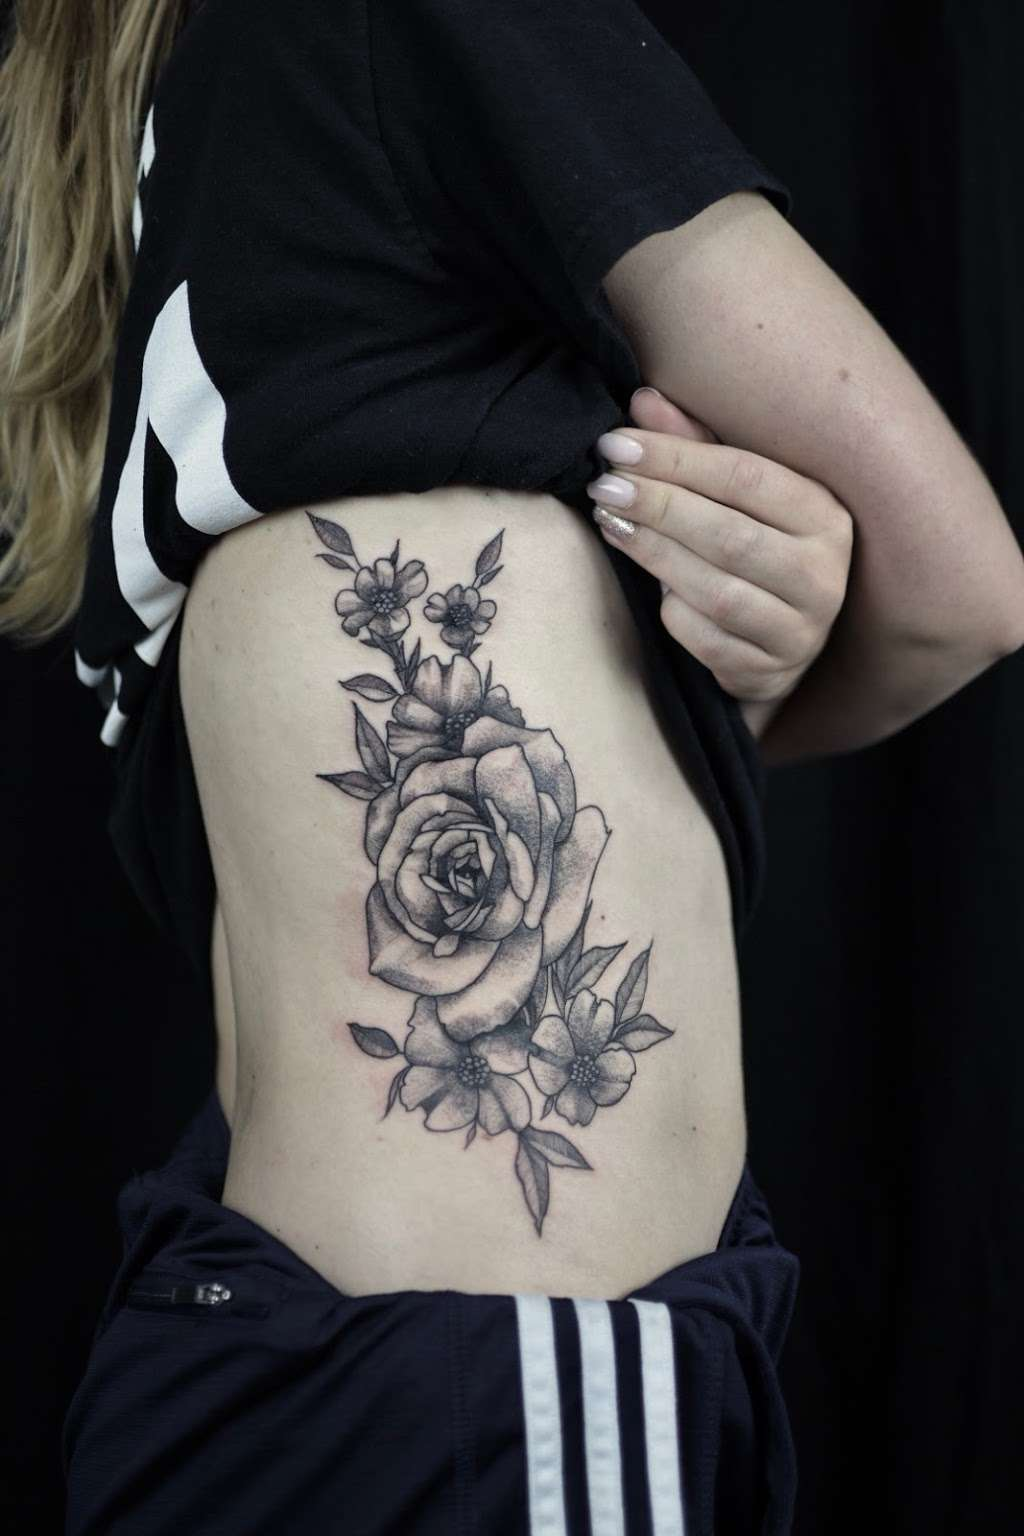 Master Craft Tattoo Co. - store  | Photo 9 of 10 | Address: 1637, 5844 S Archer Ave, Chicago, IL 60638, USA | Phone: (312) 806-4342